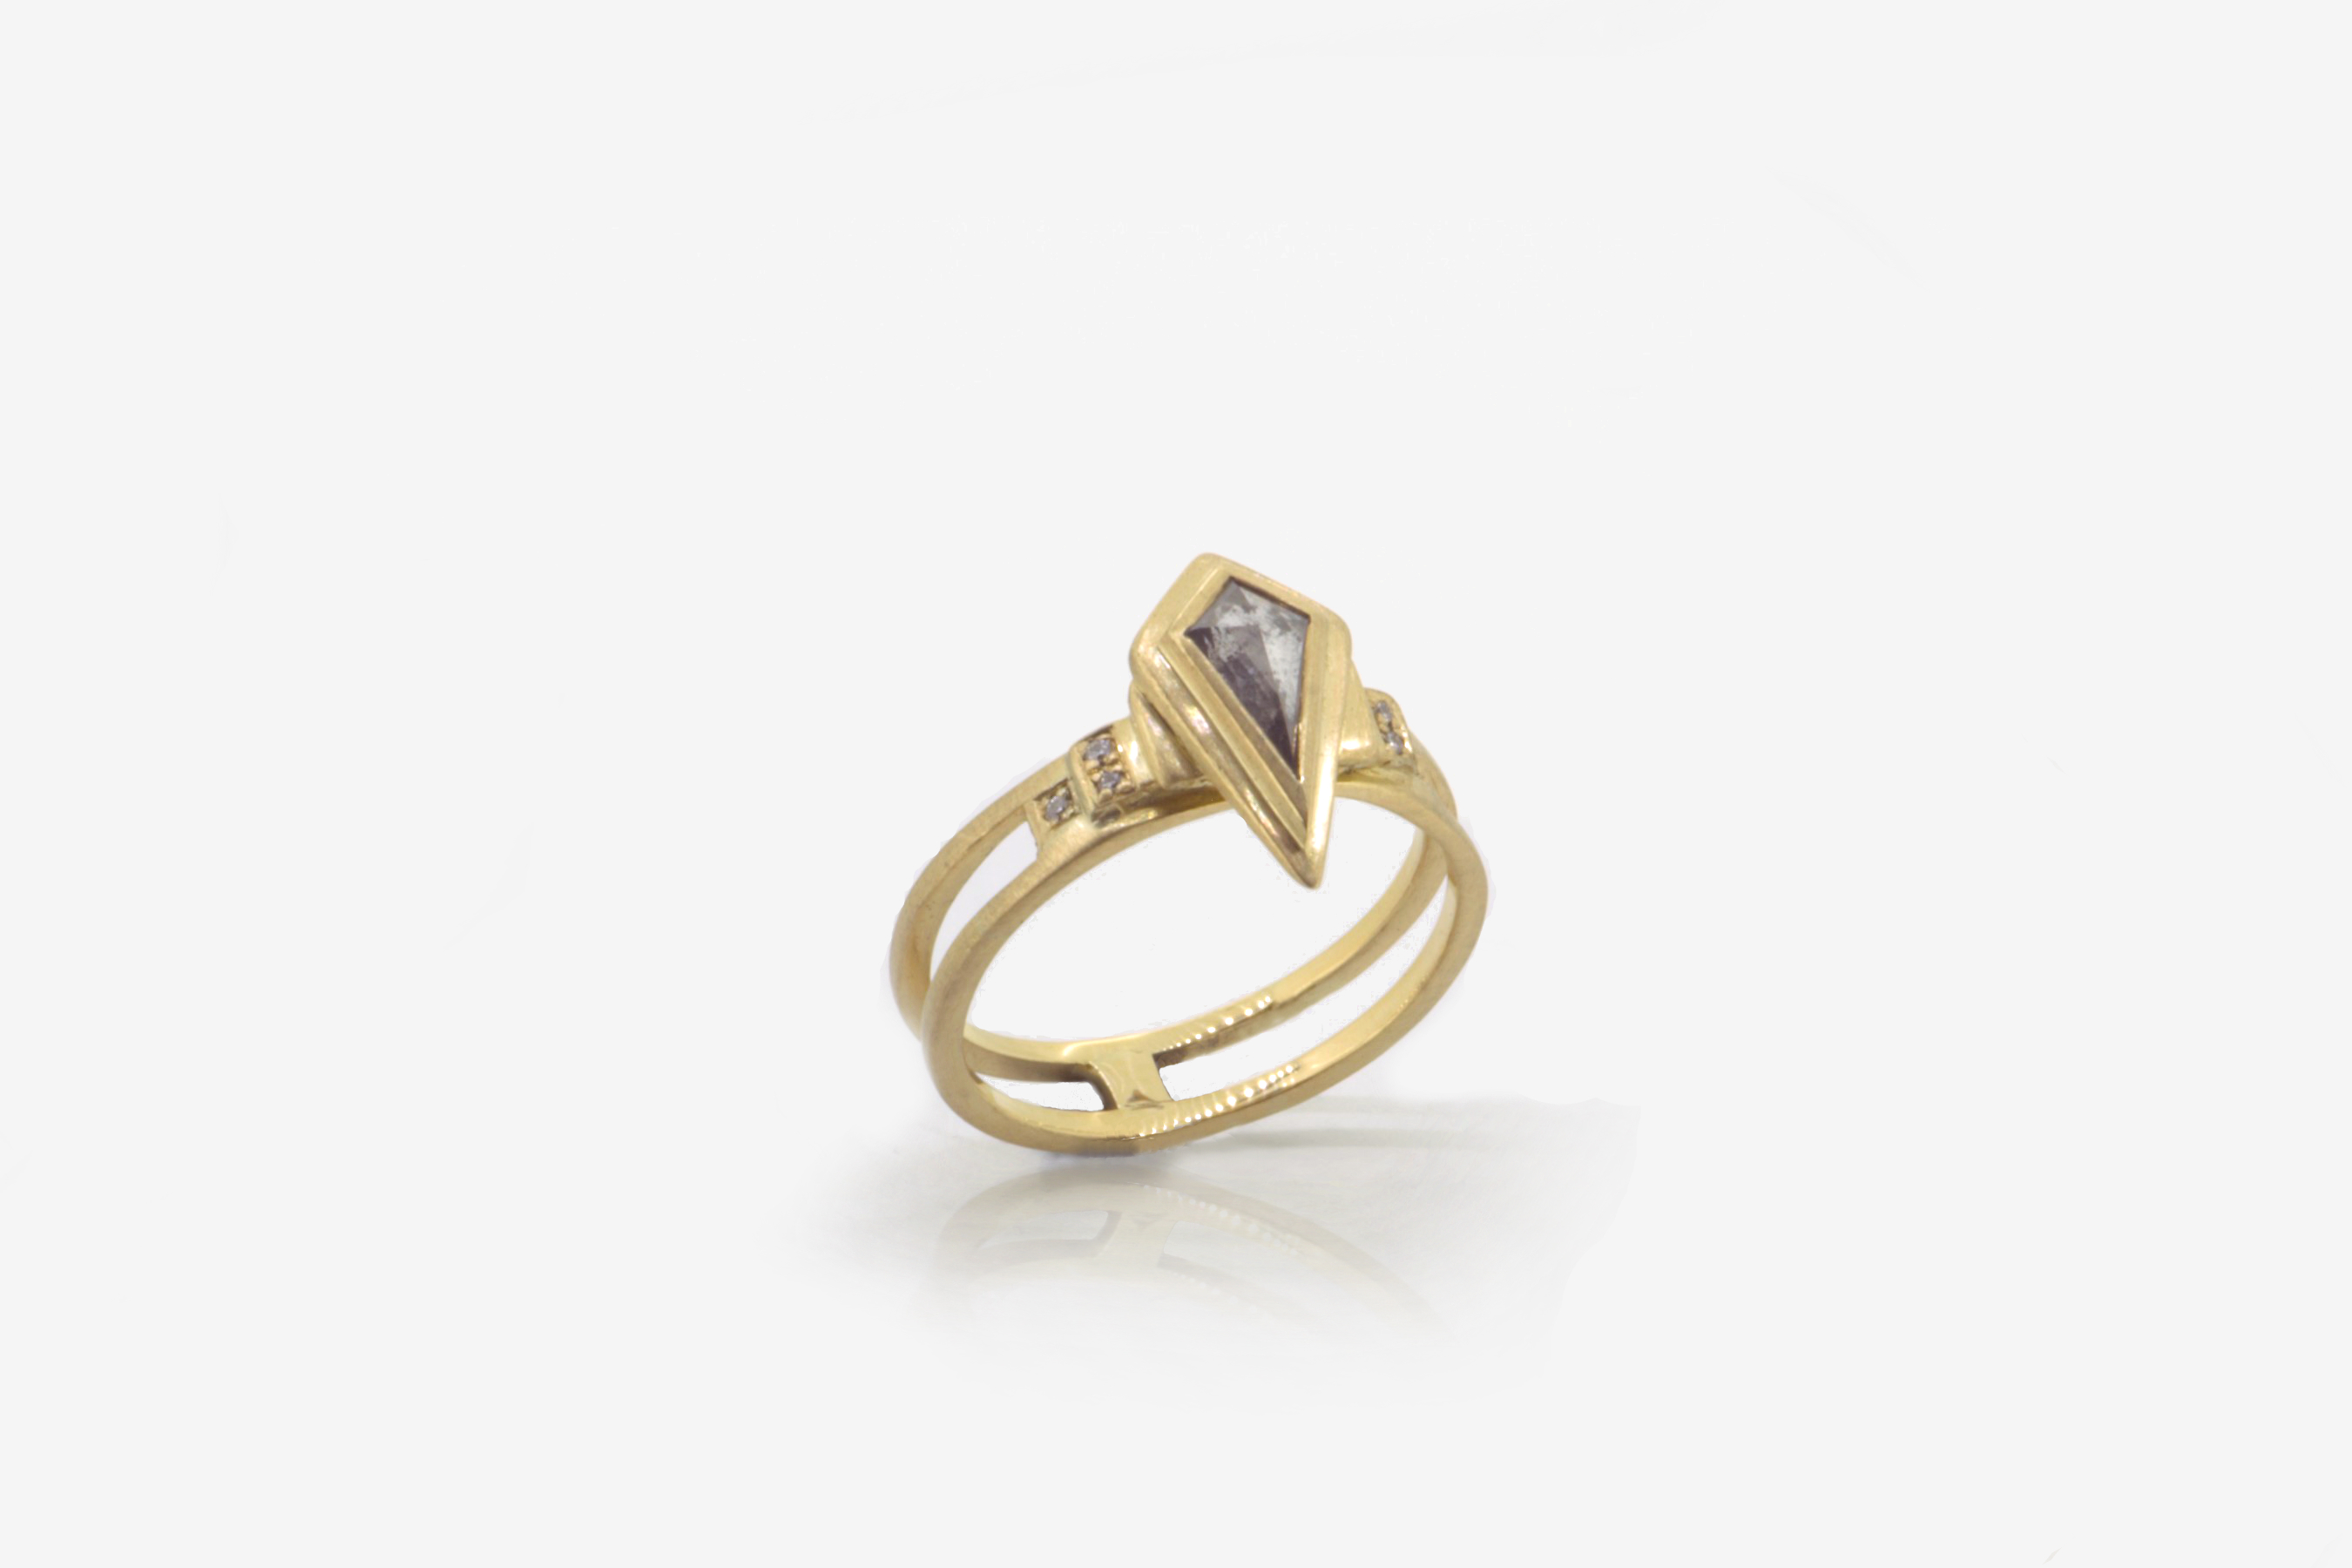 G | Svendsen | Eco Ethical Jewellery and Wedding Rings | GREEN UNION | UK